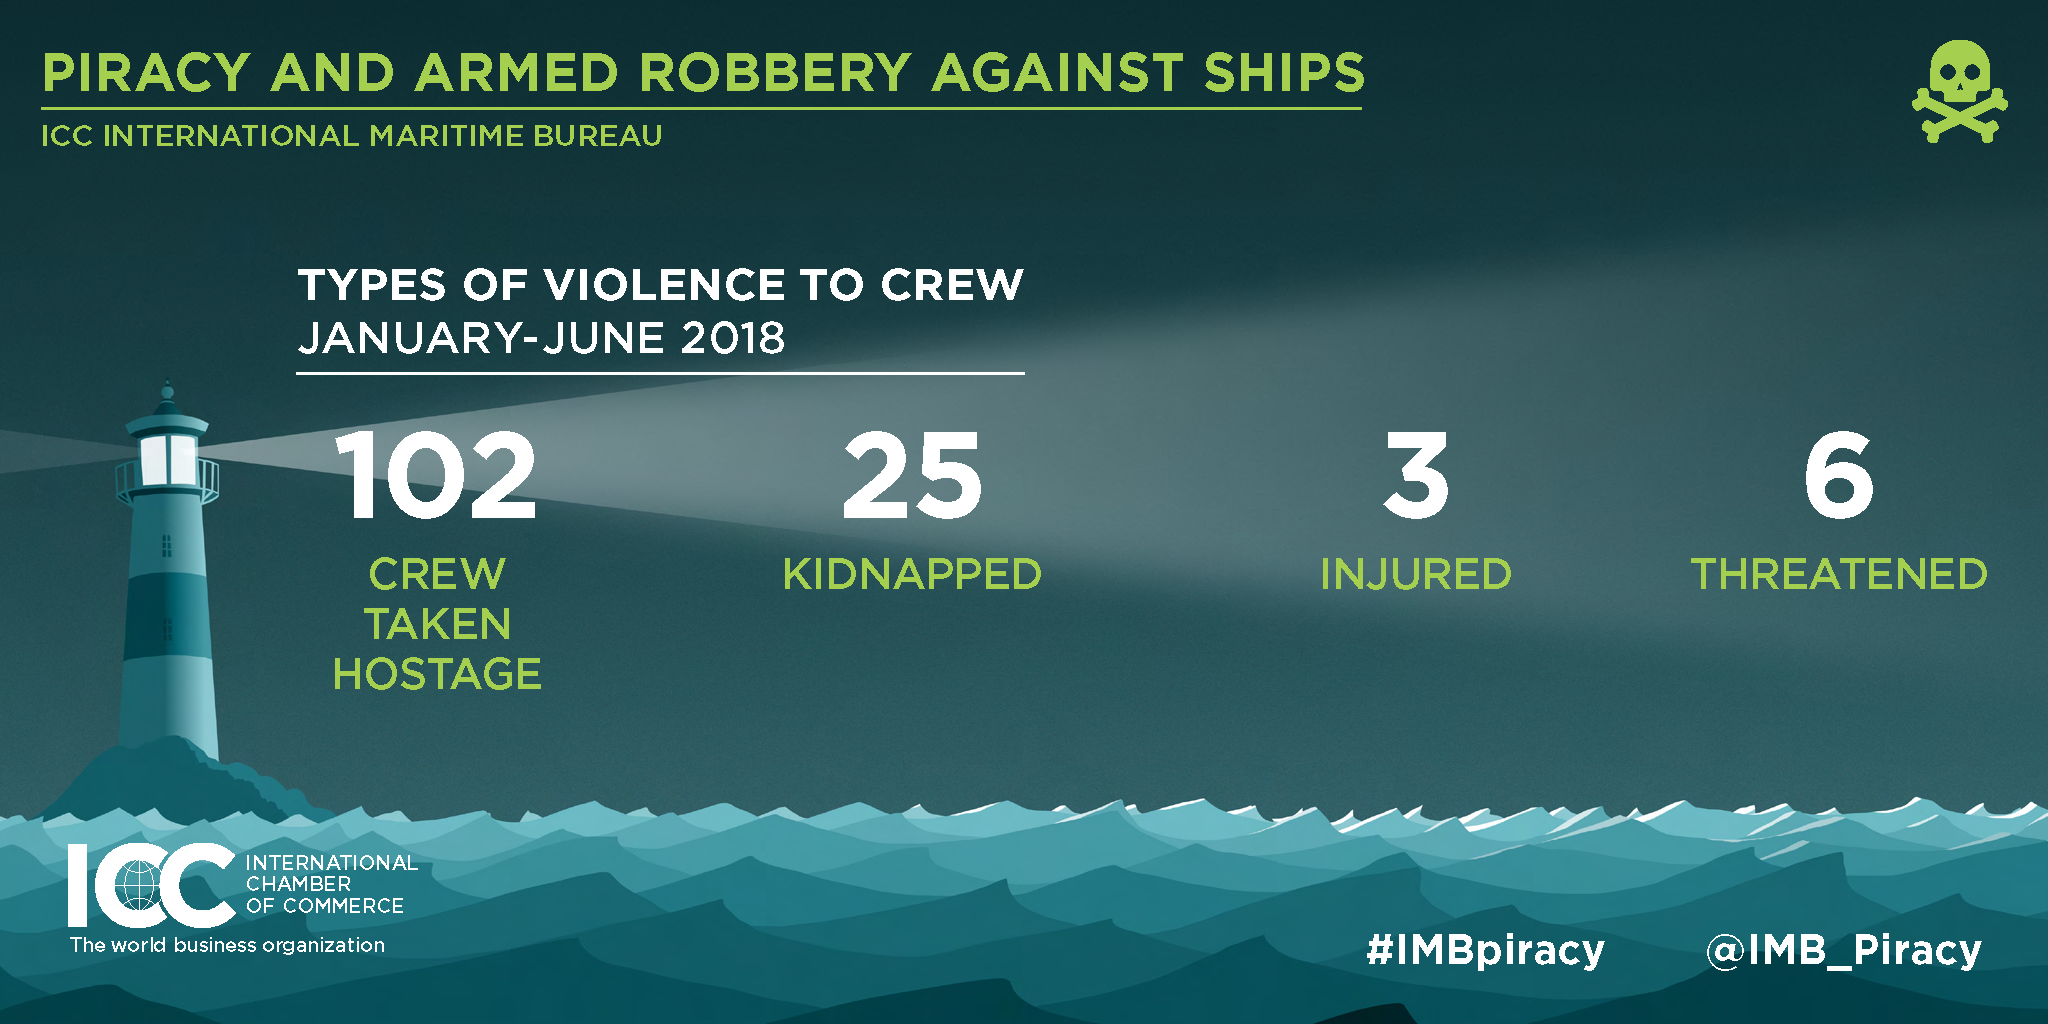 ICC IMB Piracy Report June 2018 Crew Violence